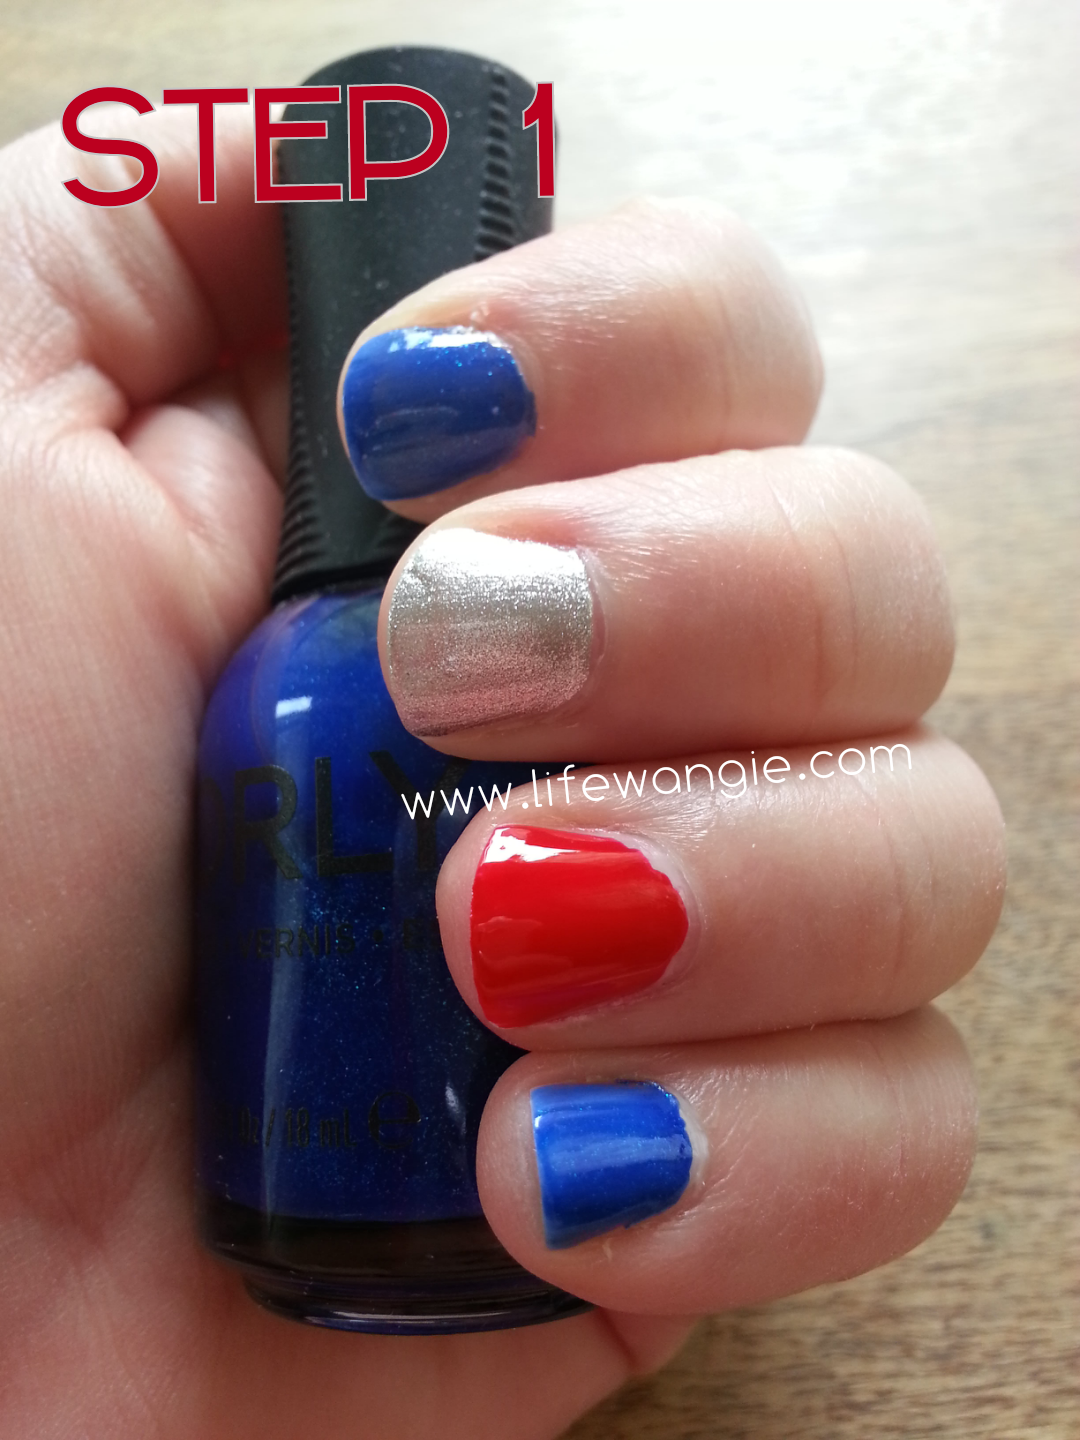 The nails are alternating in red, blue and silver.